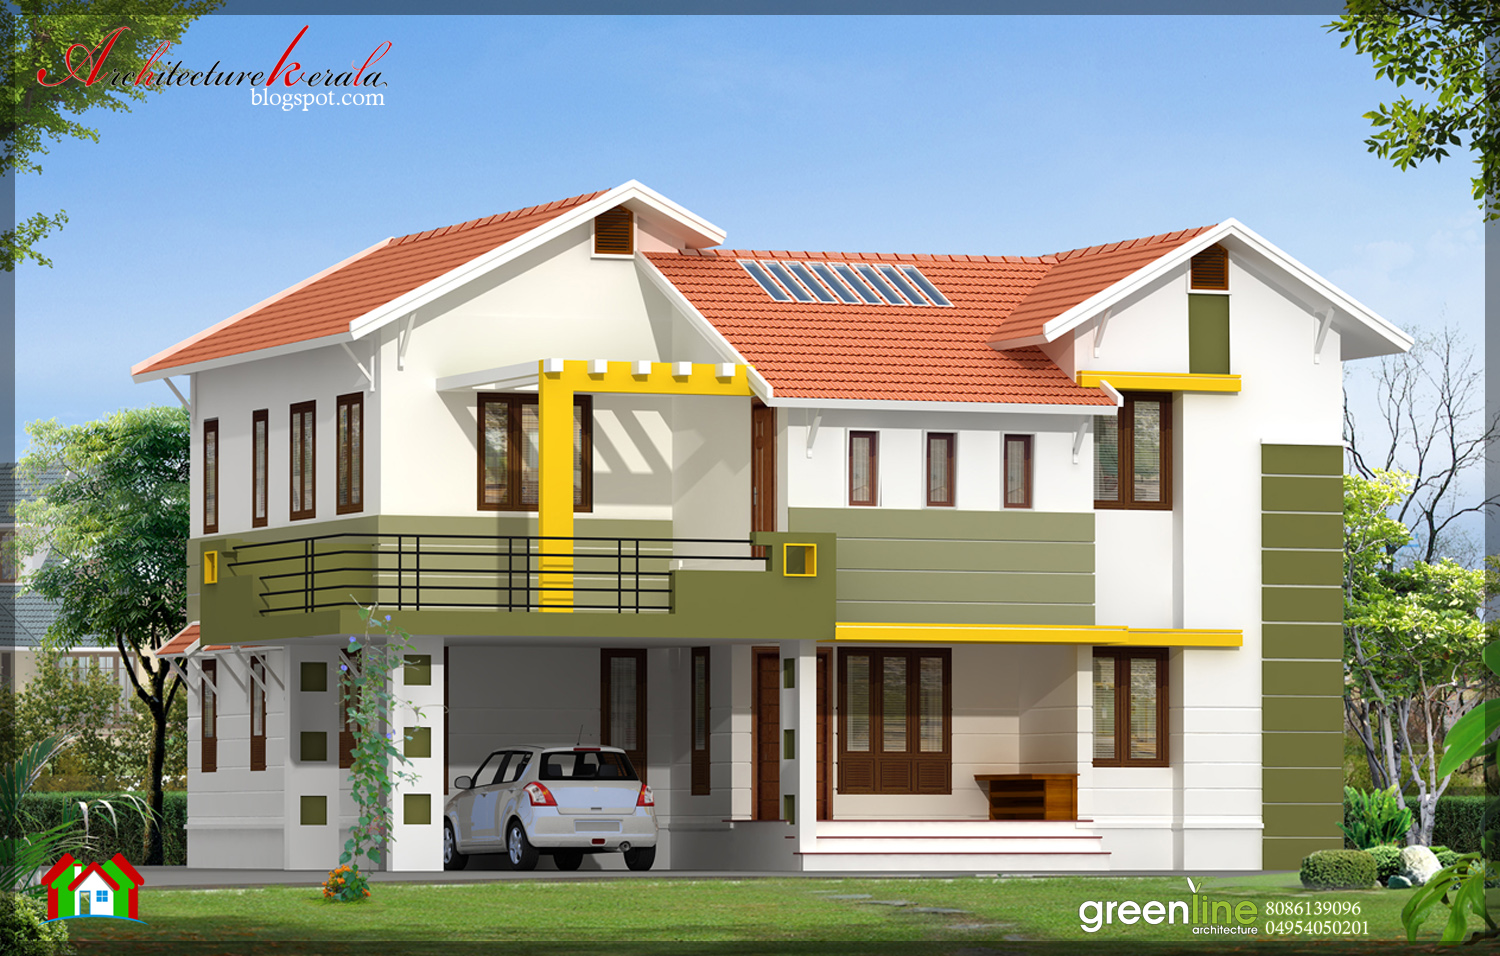 Architecture kerala 4 bhk contemporary style indian home for Architecture design for home in india